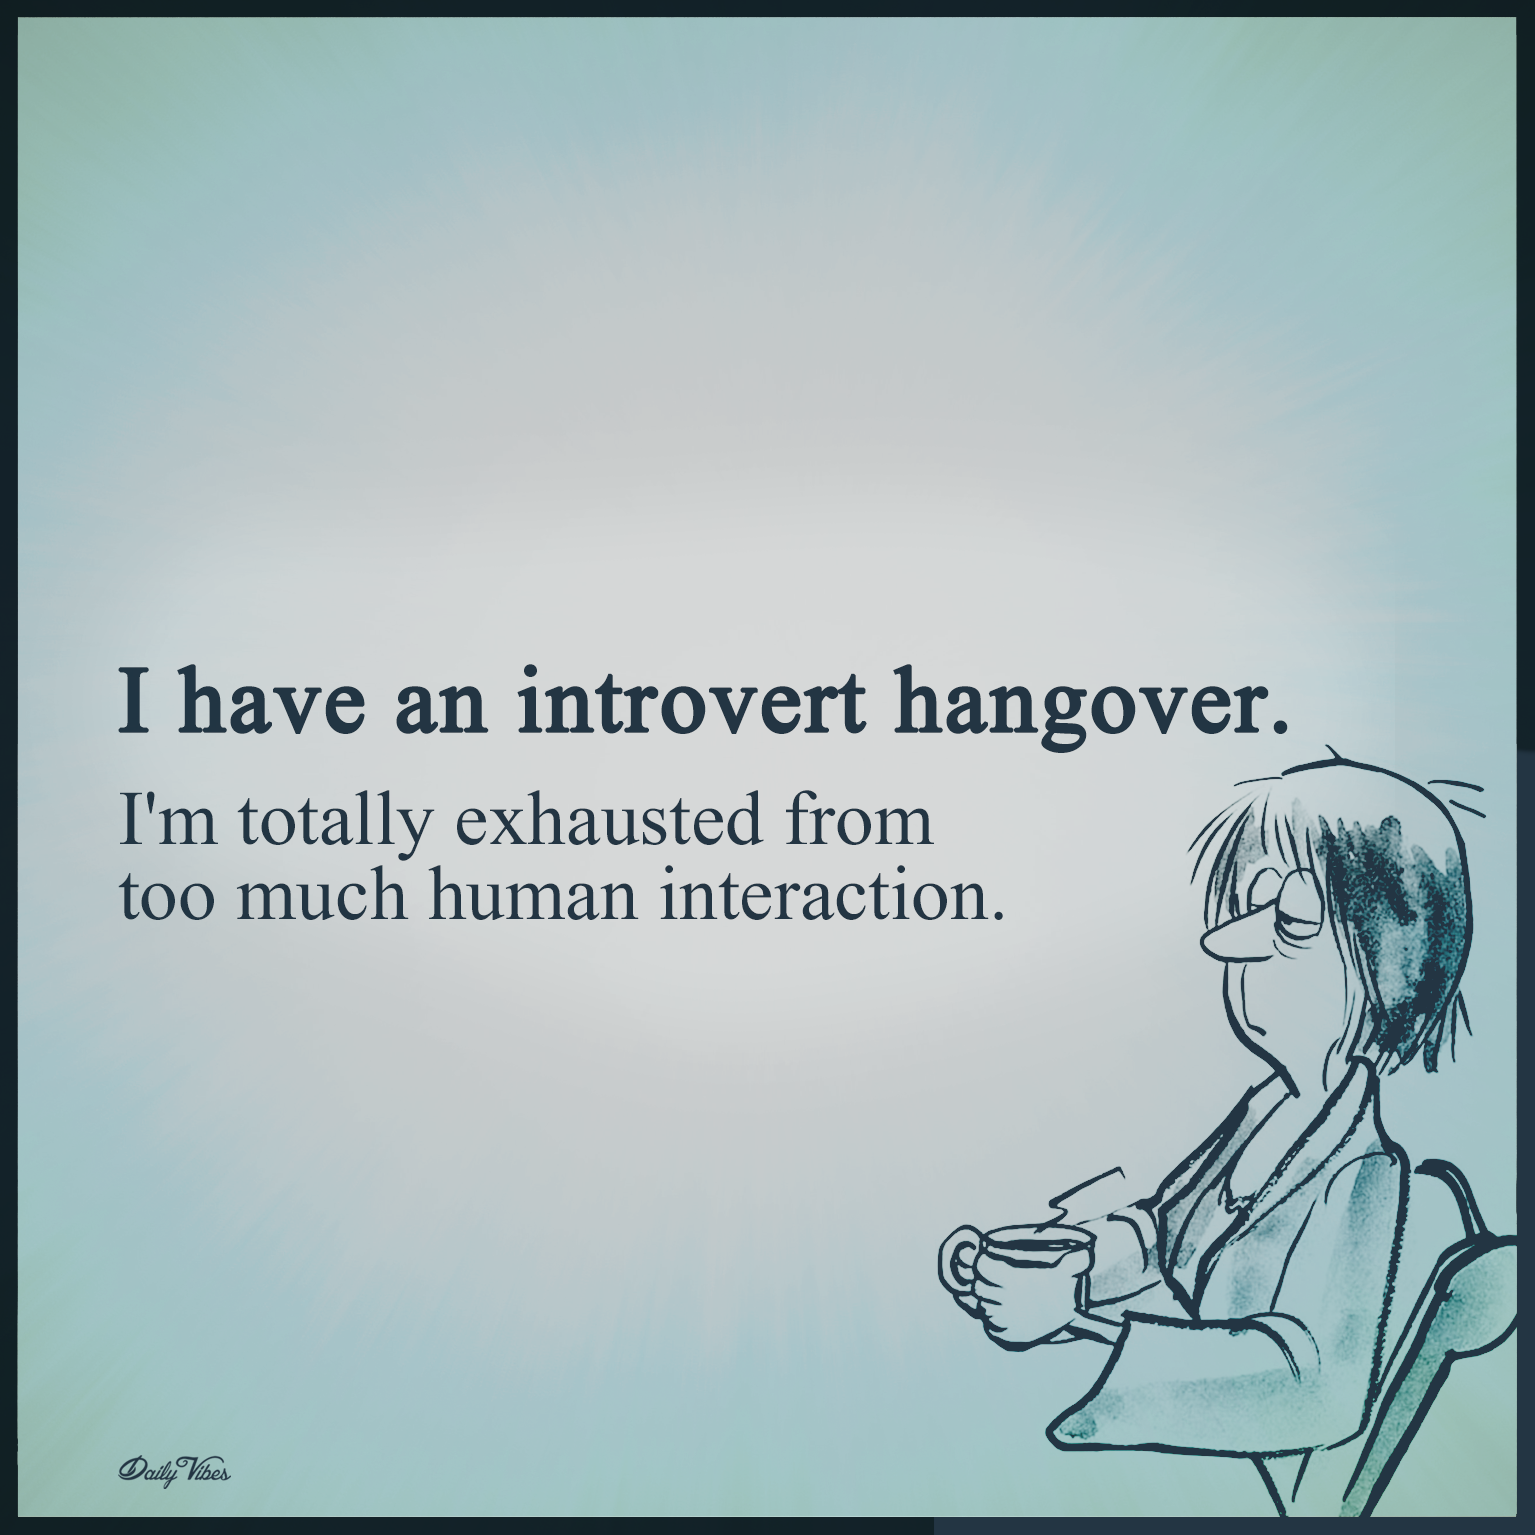 Discussion on this topic: What is an introvert hangover, what-is-an-introvert-hangover/